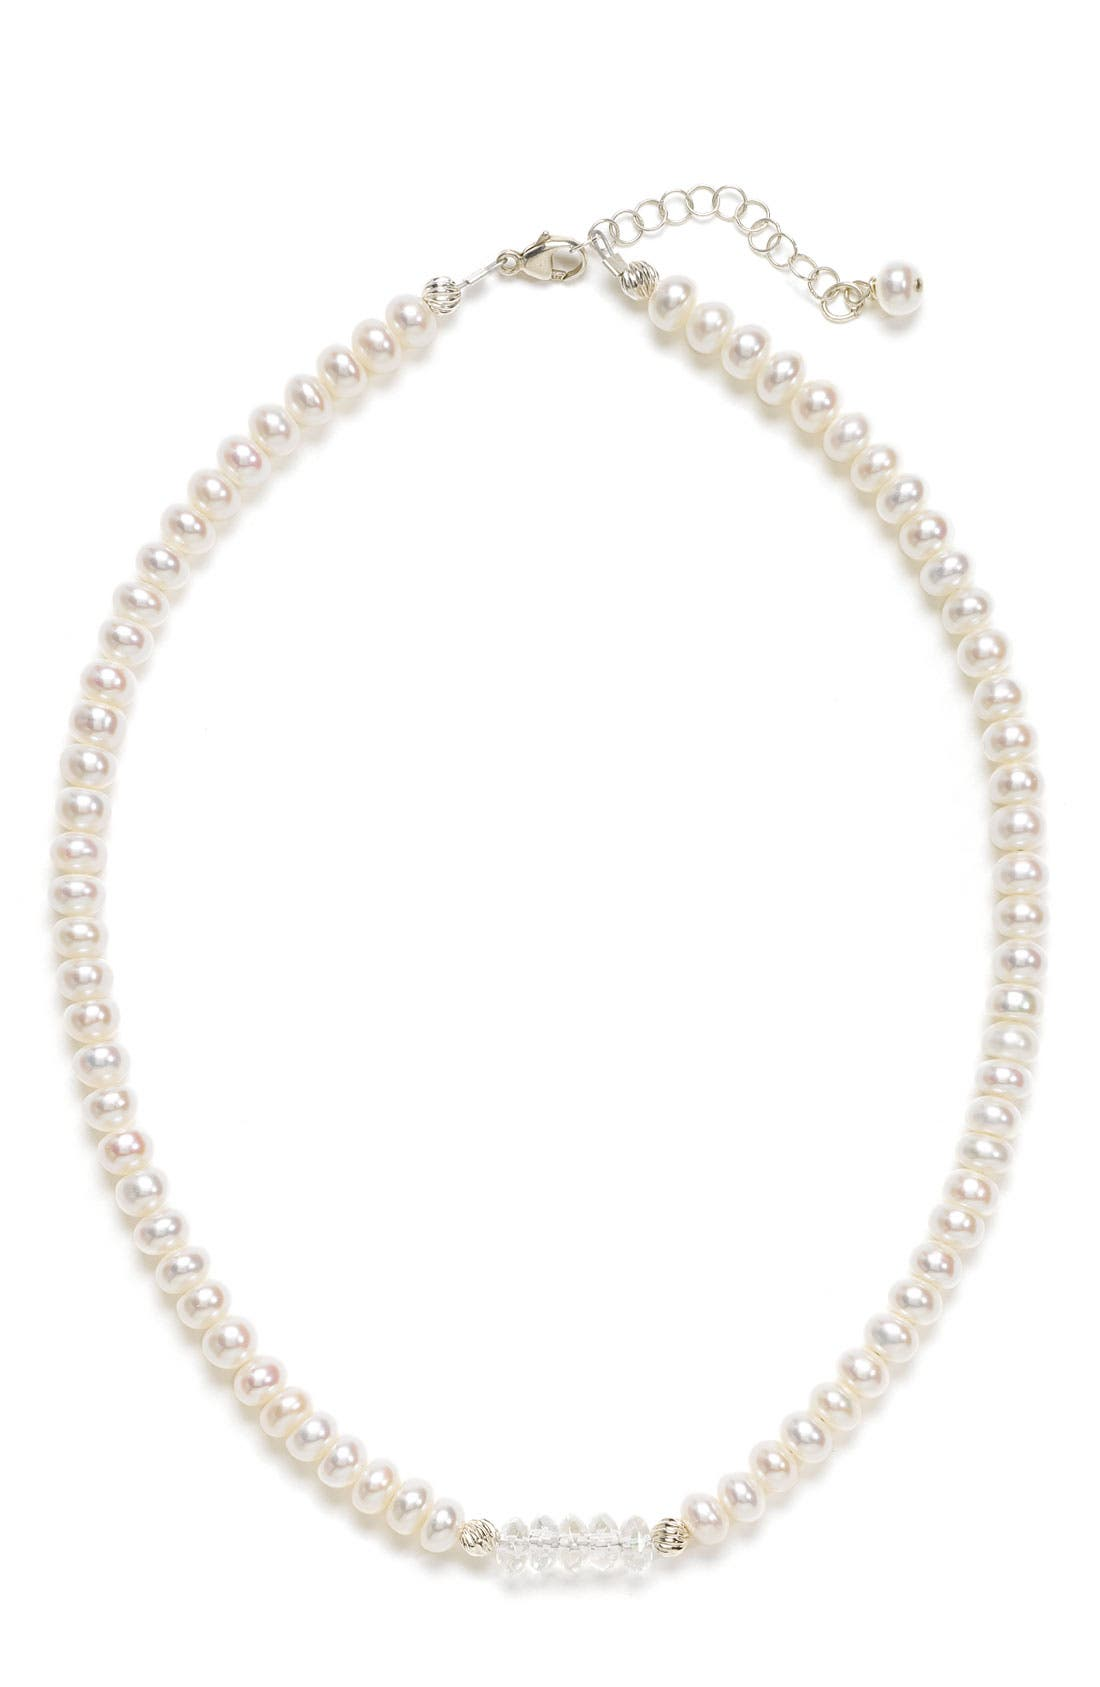 Alternate Image 1 Selected - Abela Designs Freshwater Pearl Necklace (Girls)